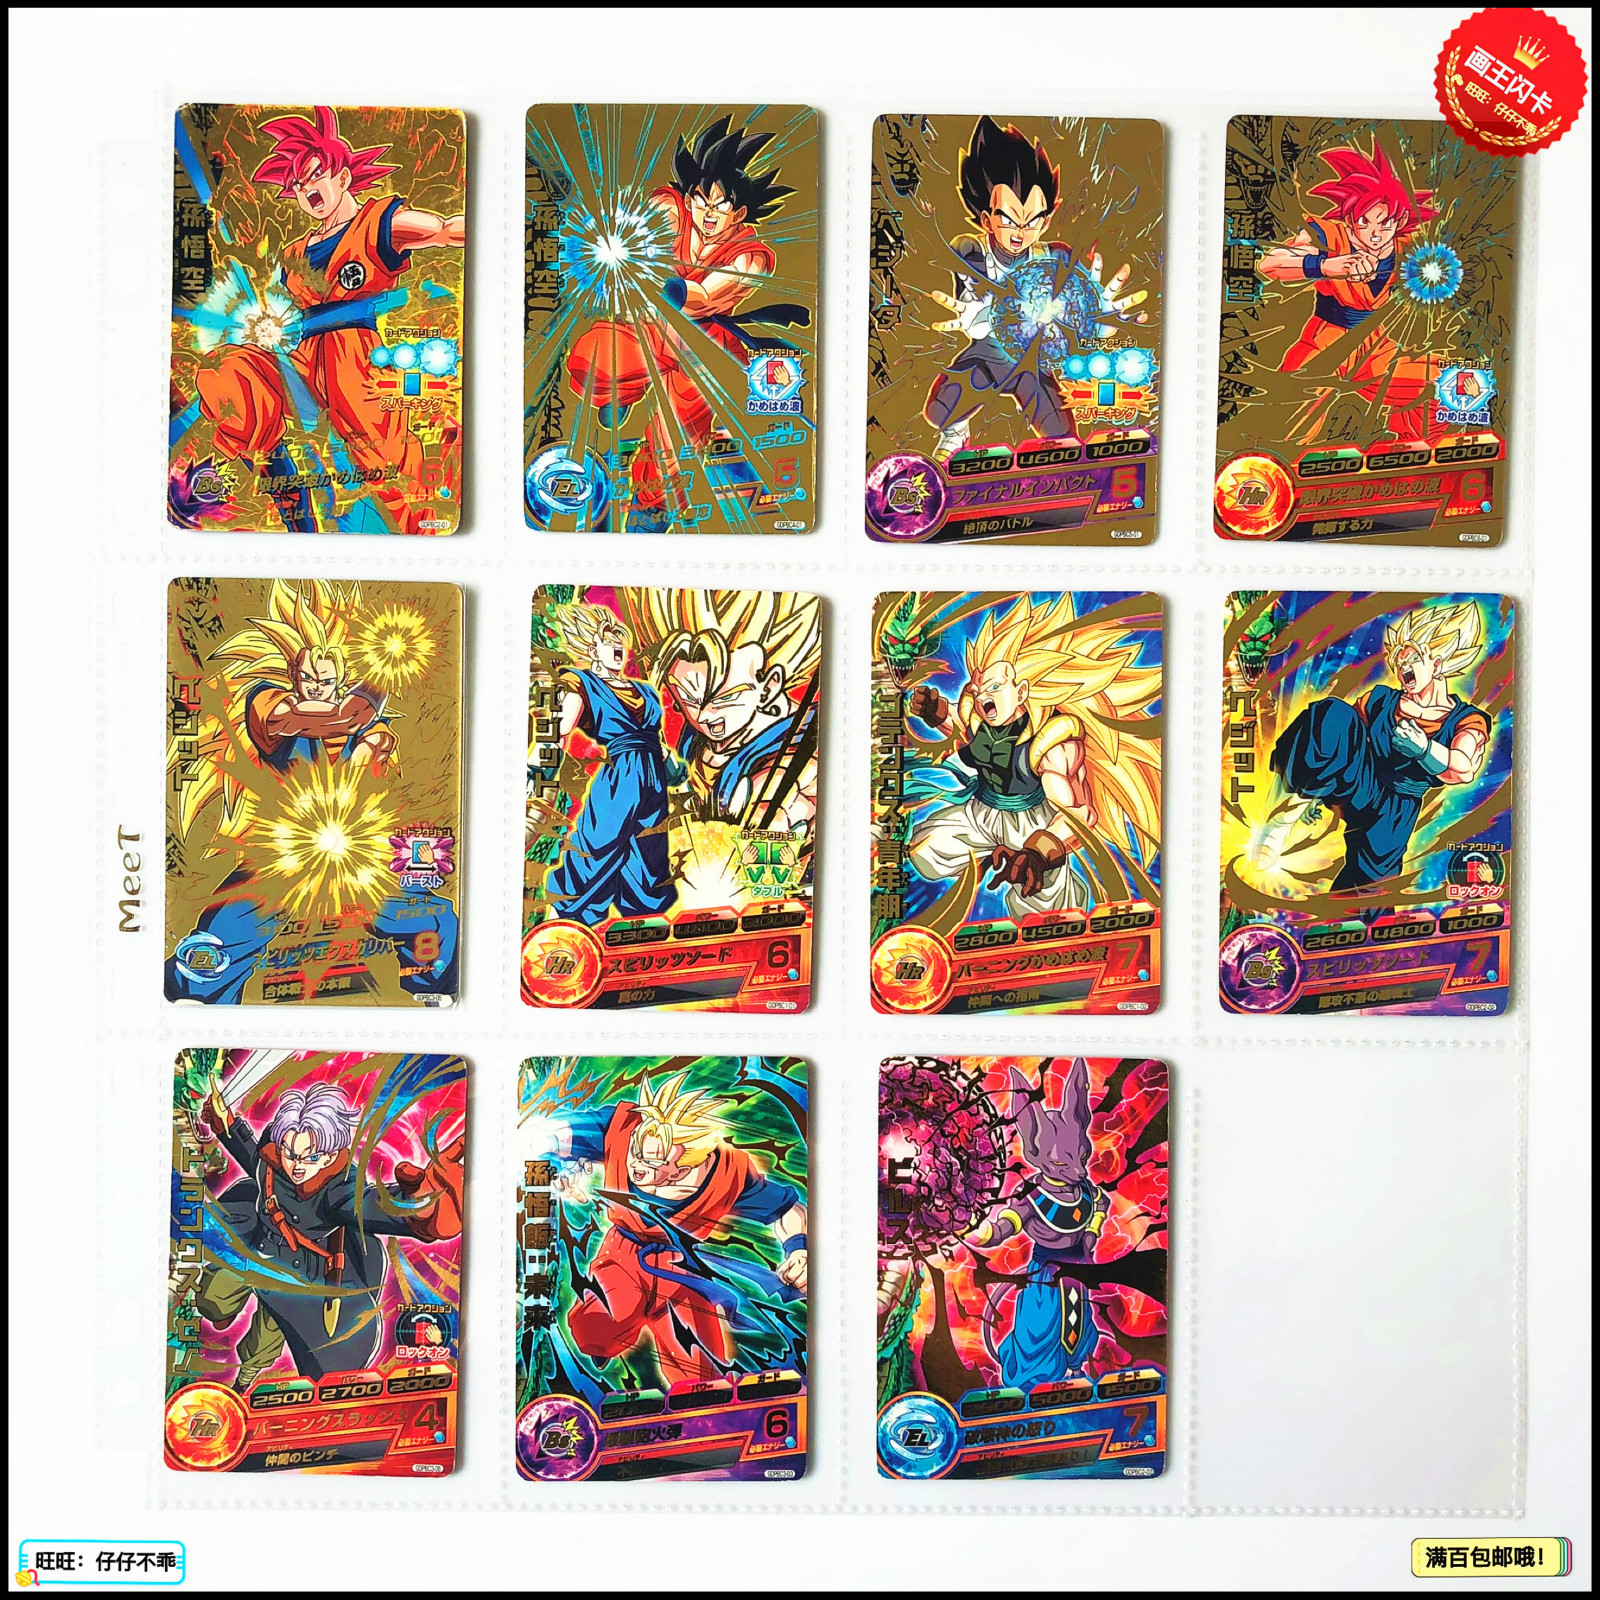 Japan Original Dragon Ball Hero Card GDPBC1 2 3 Goku Toys Hobbies Collectibles Game Collection Anime Cards